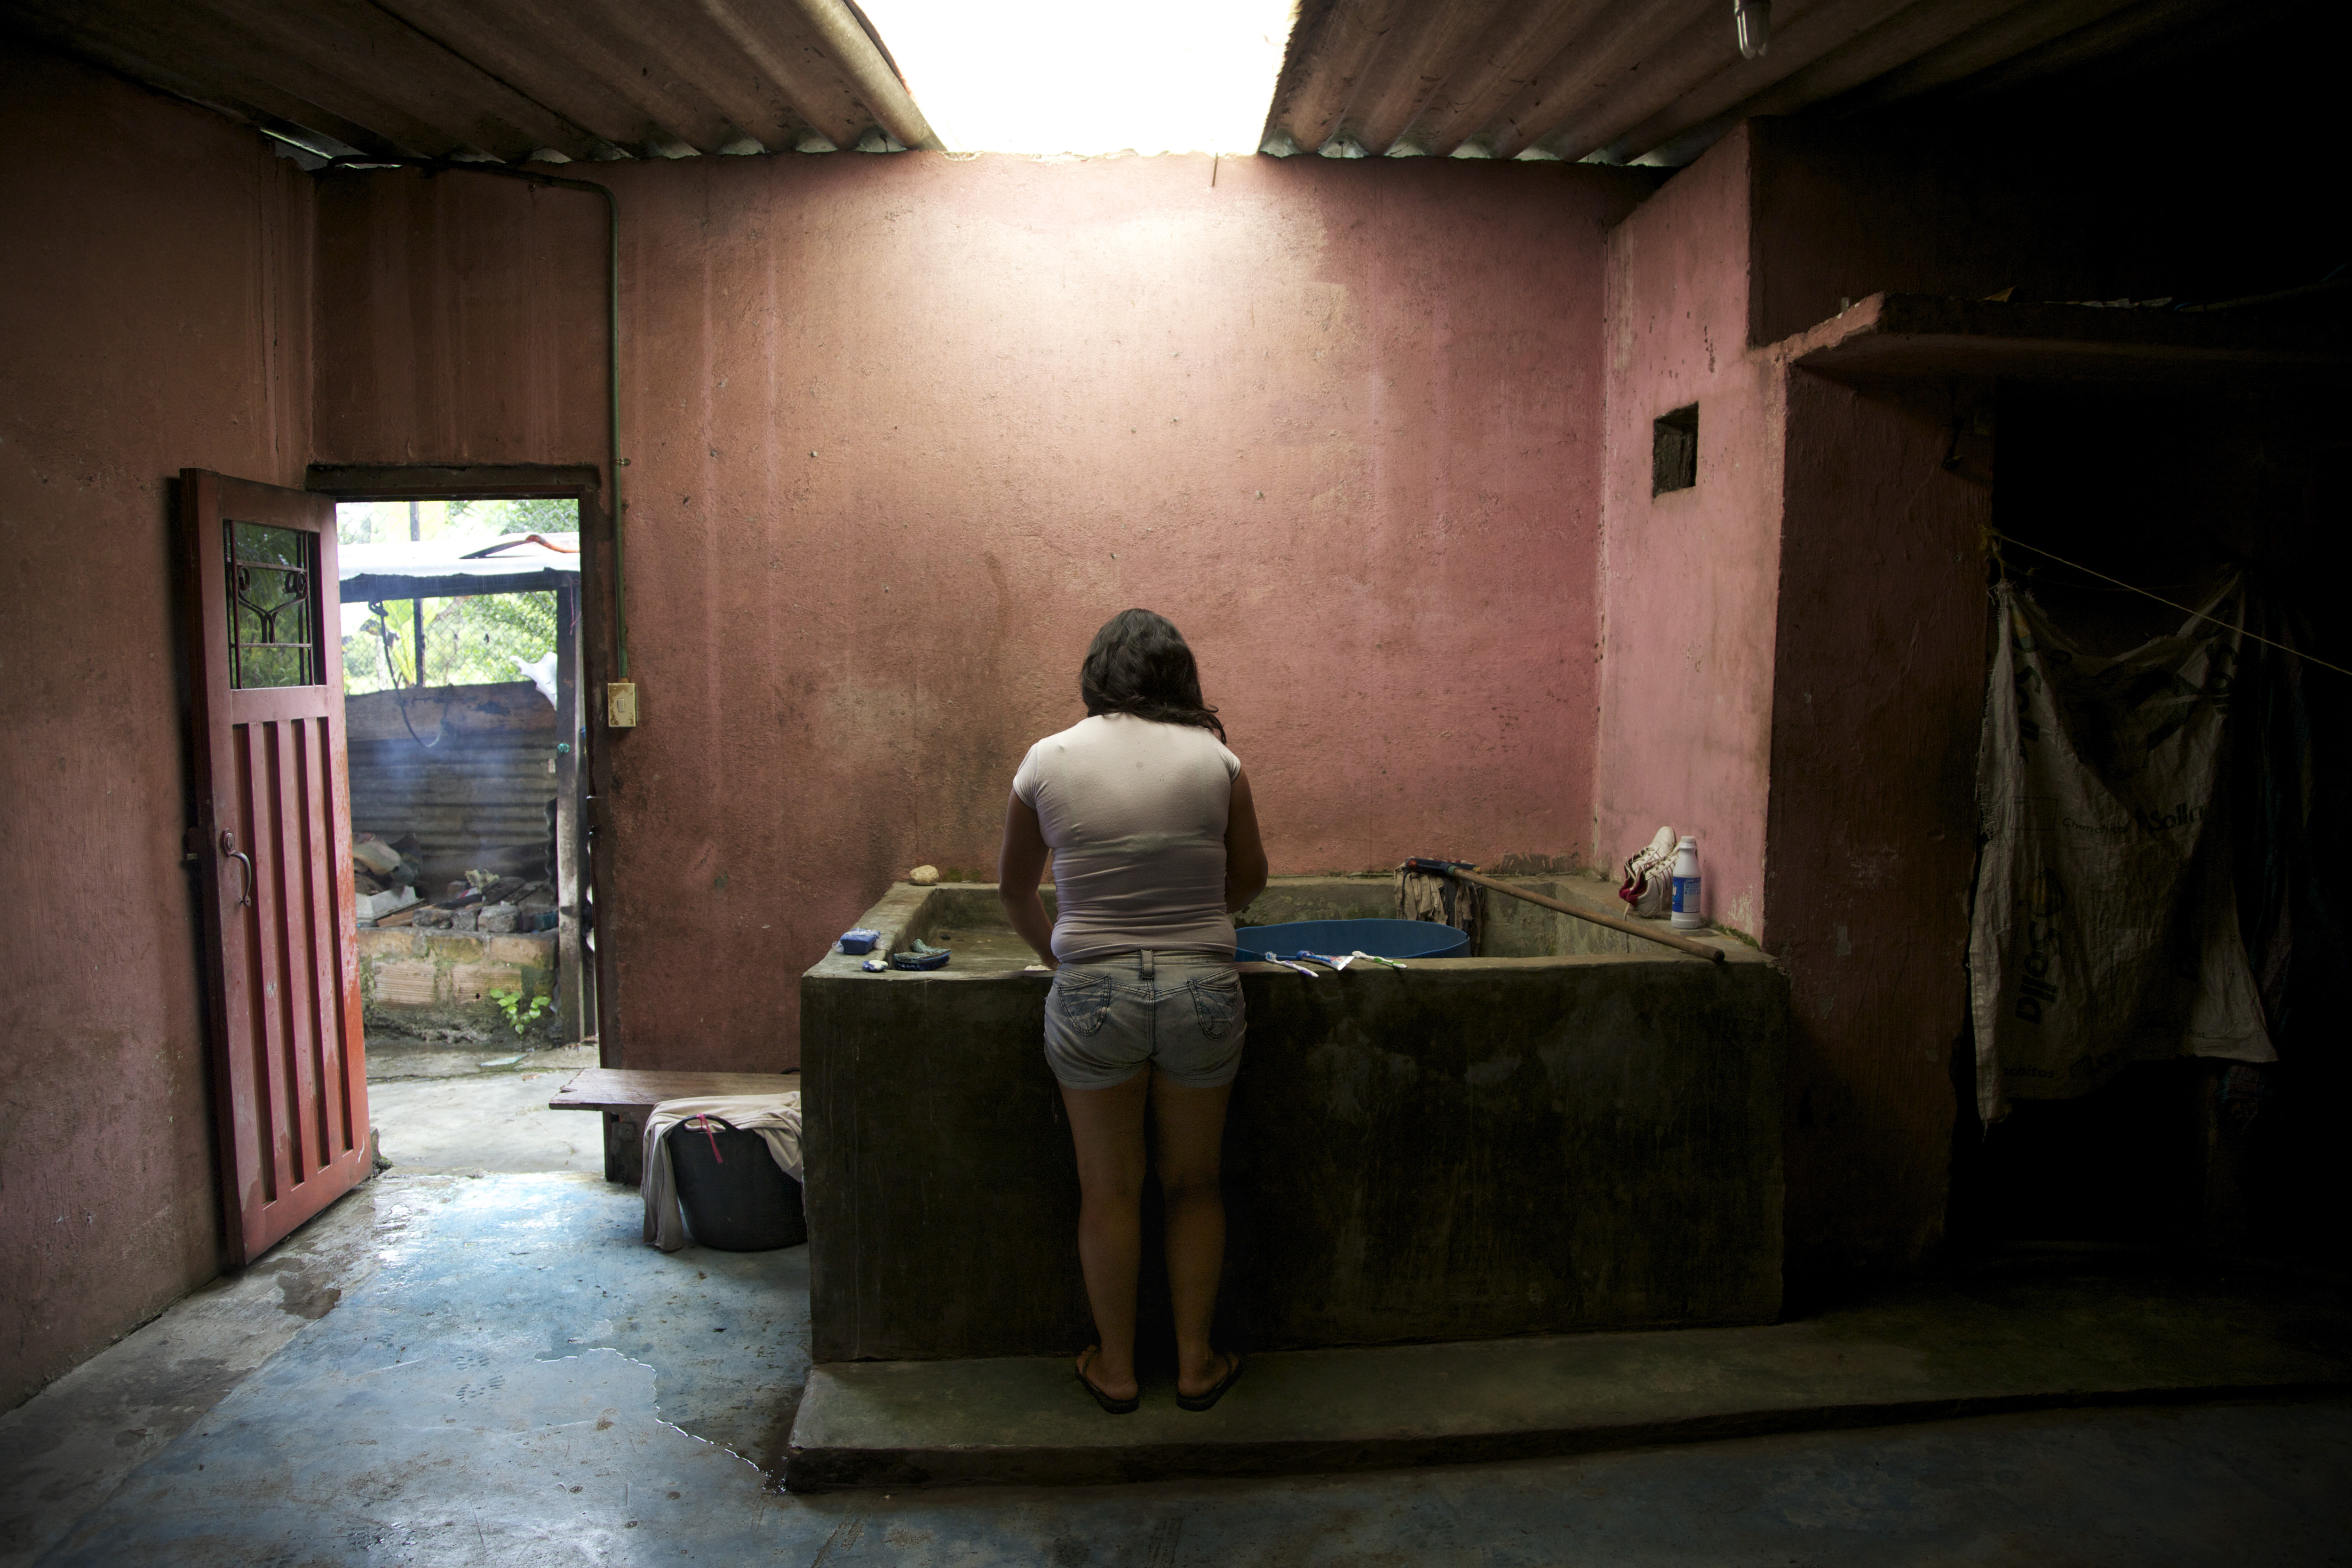 Isabel Narvaez is among countless women who remain traumatized by rapes they endured in El Pacer, Colombia. The small, remote hamlet in the country's south is just one place where women were victims of violent crimes during the civil conflict.